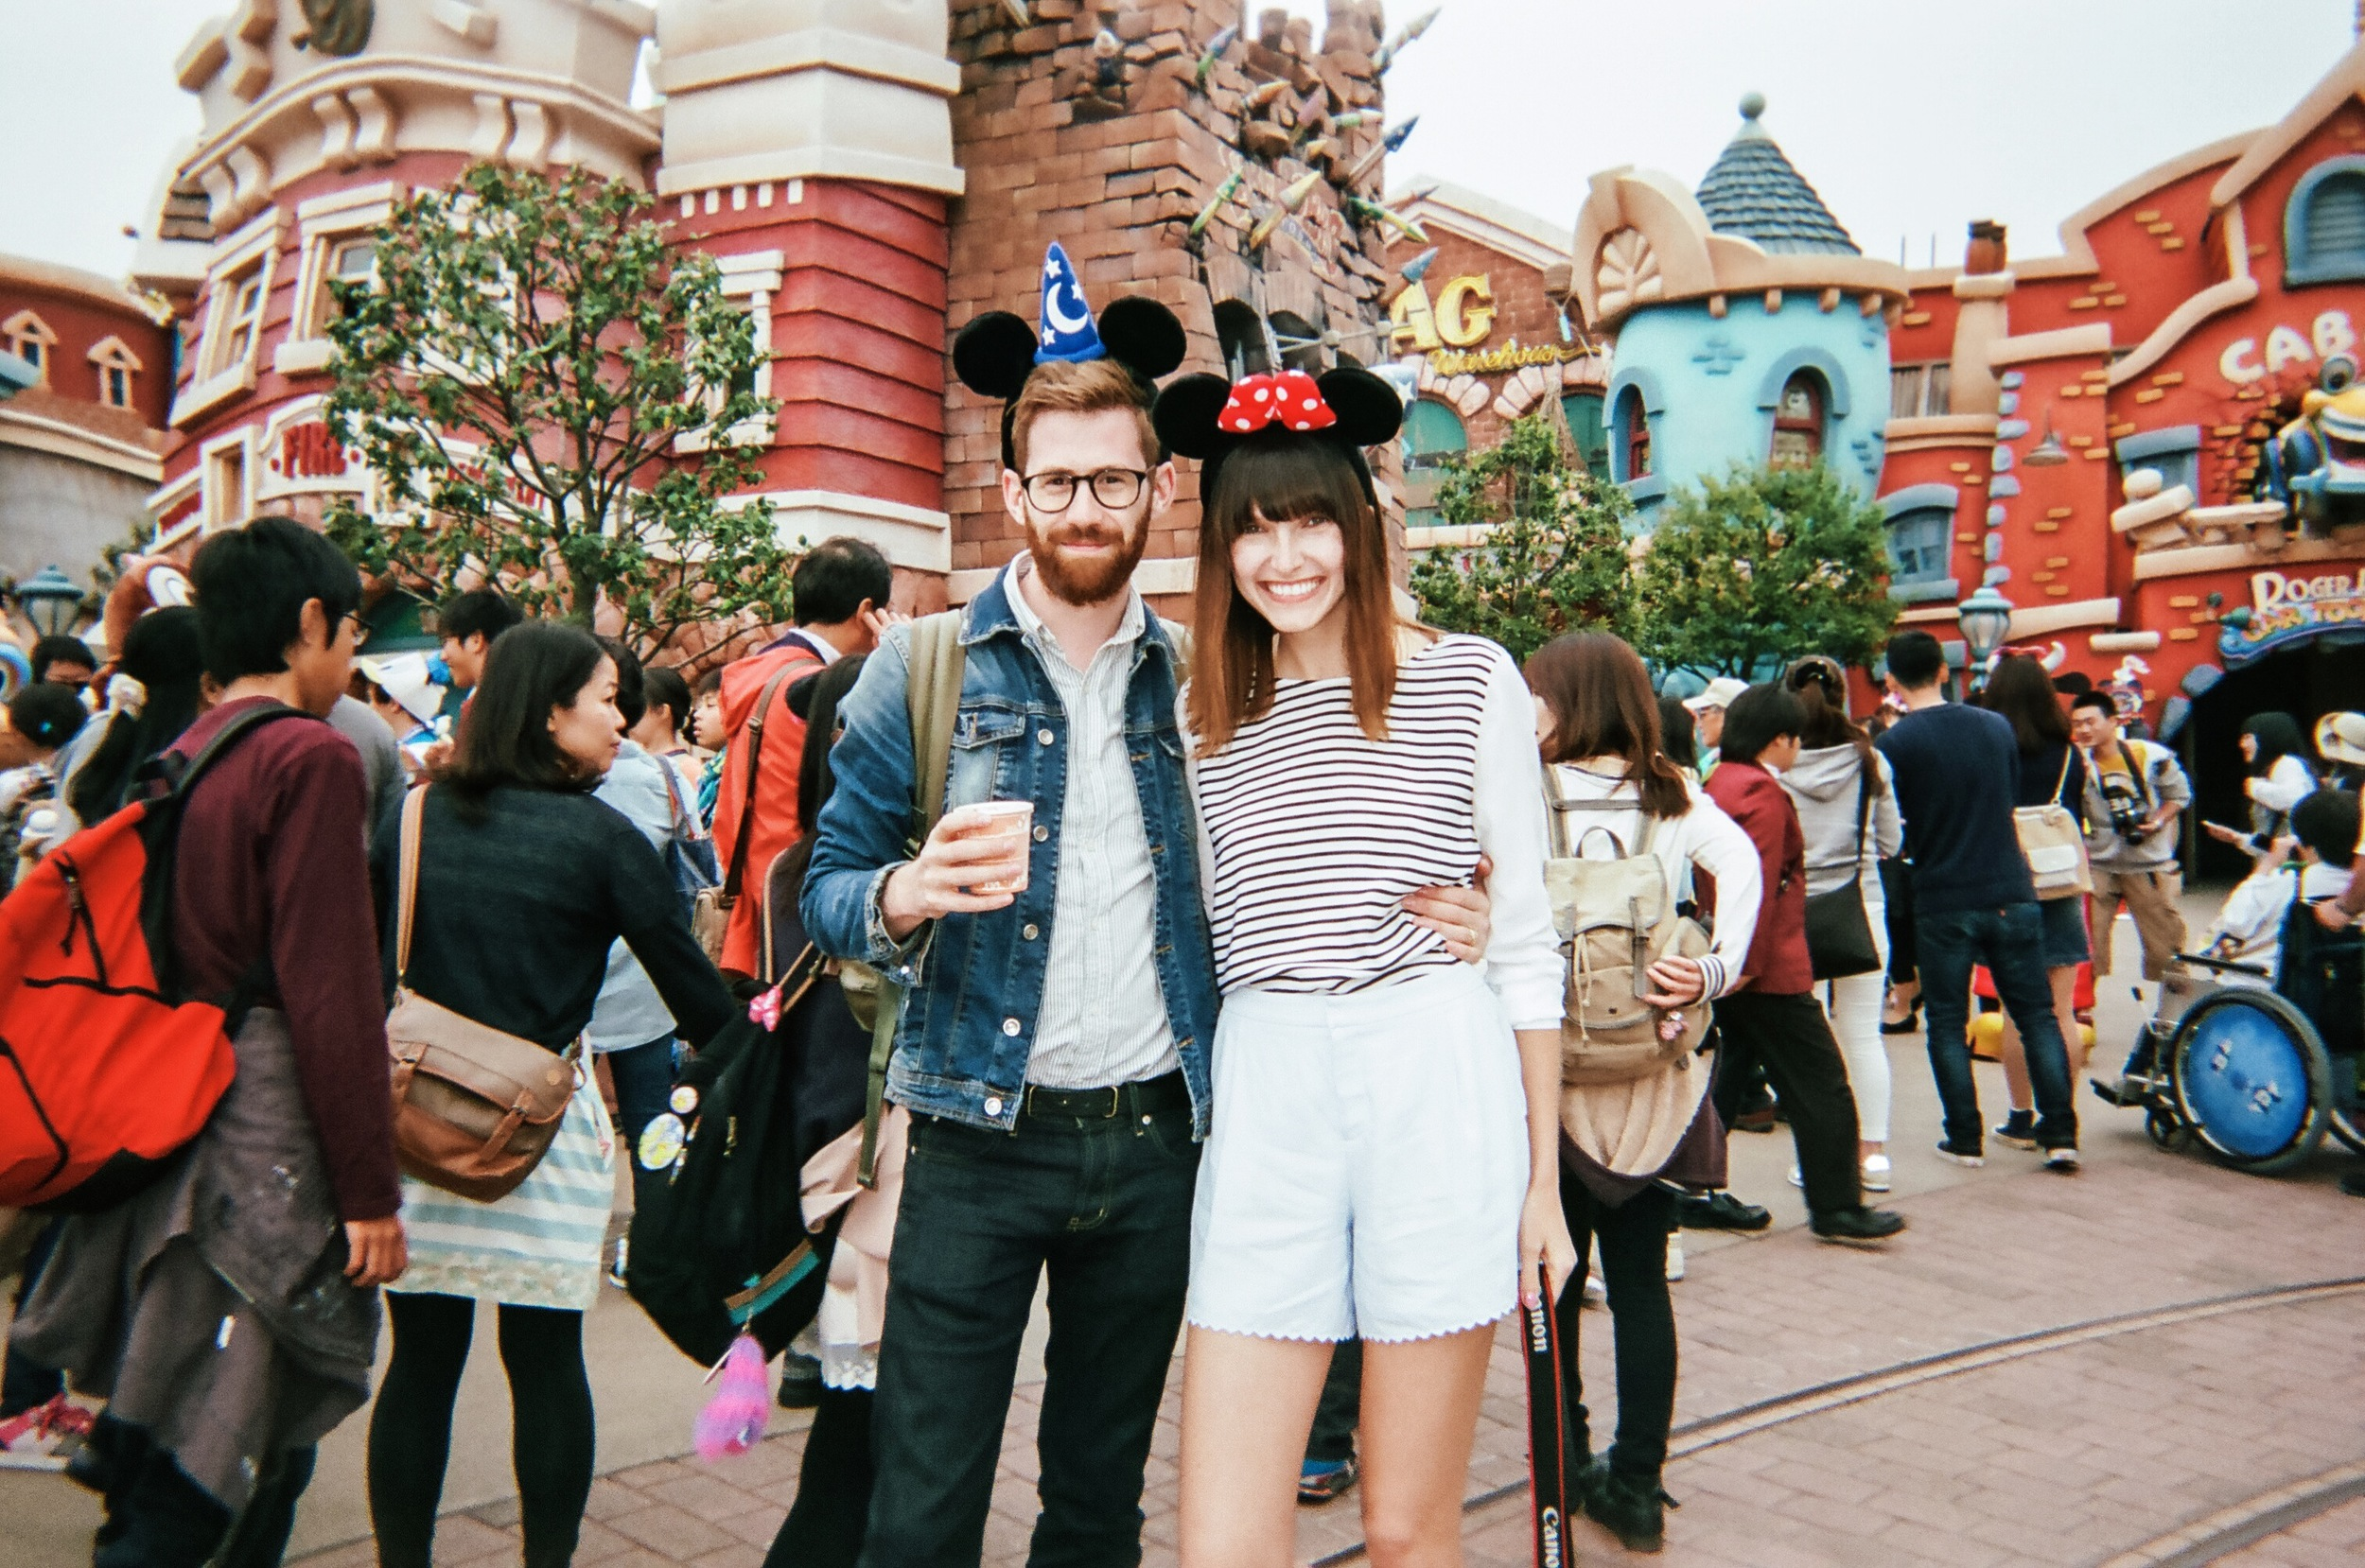 Here we are in Toontown, in Disneyland Tokyo